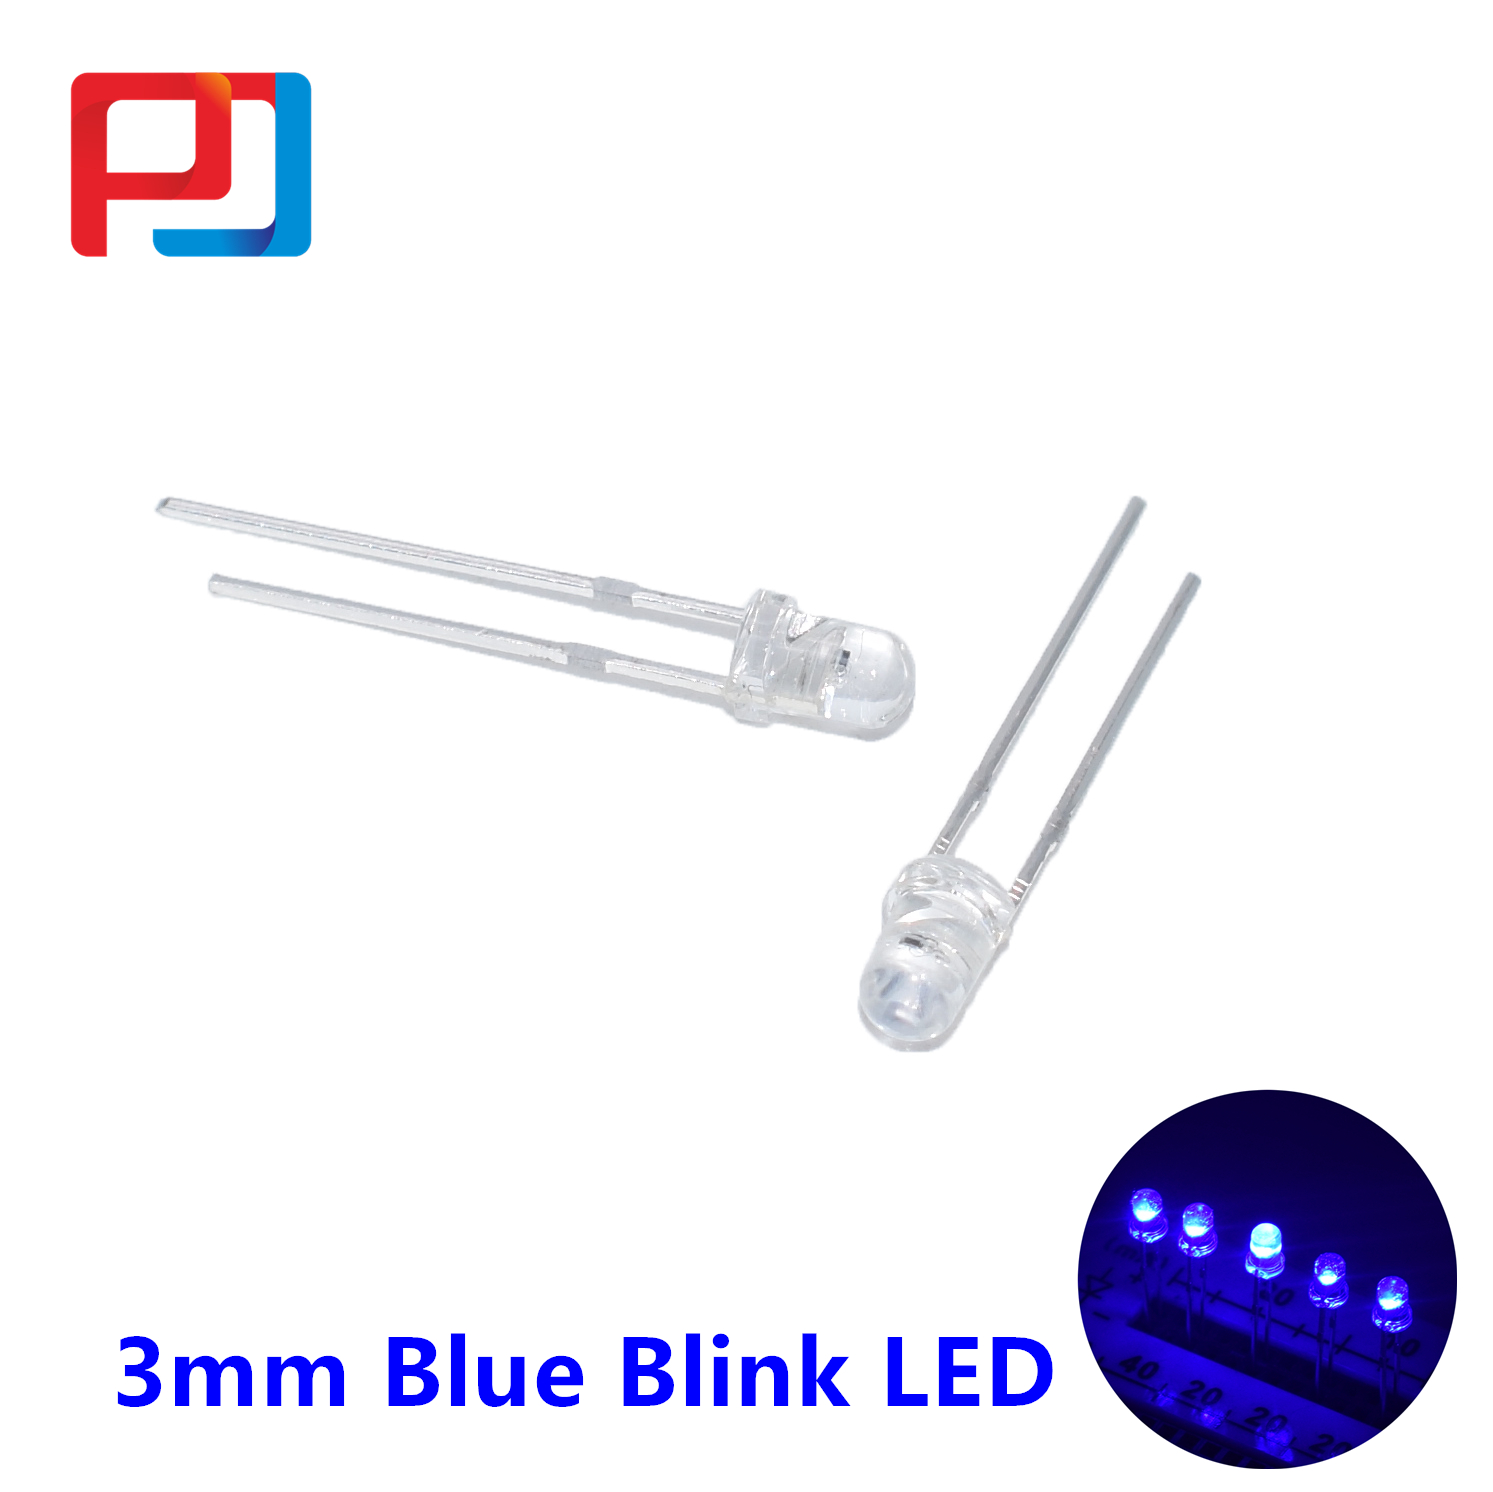 Othmro 30 pcs Red Blue 3mm LED Diode Lights Lighting Bulb Lamps Round Head Common Cathode 3 Pin LED Diode